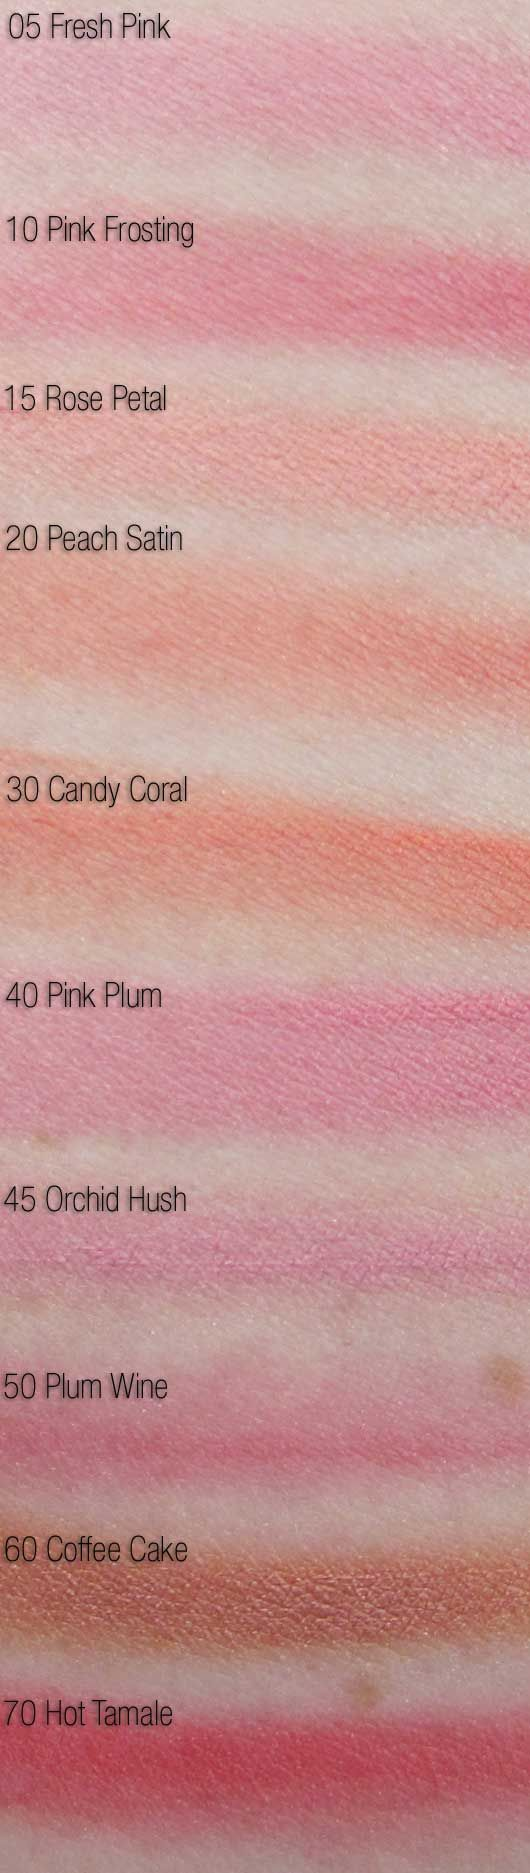 maybelline dream bouncy blush swatches